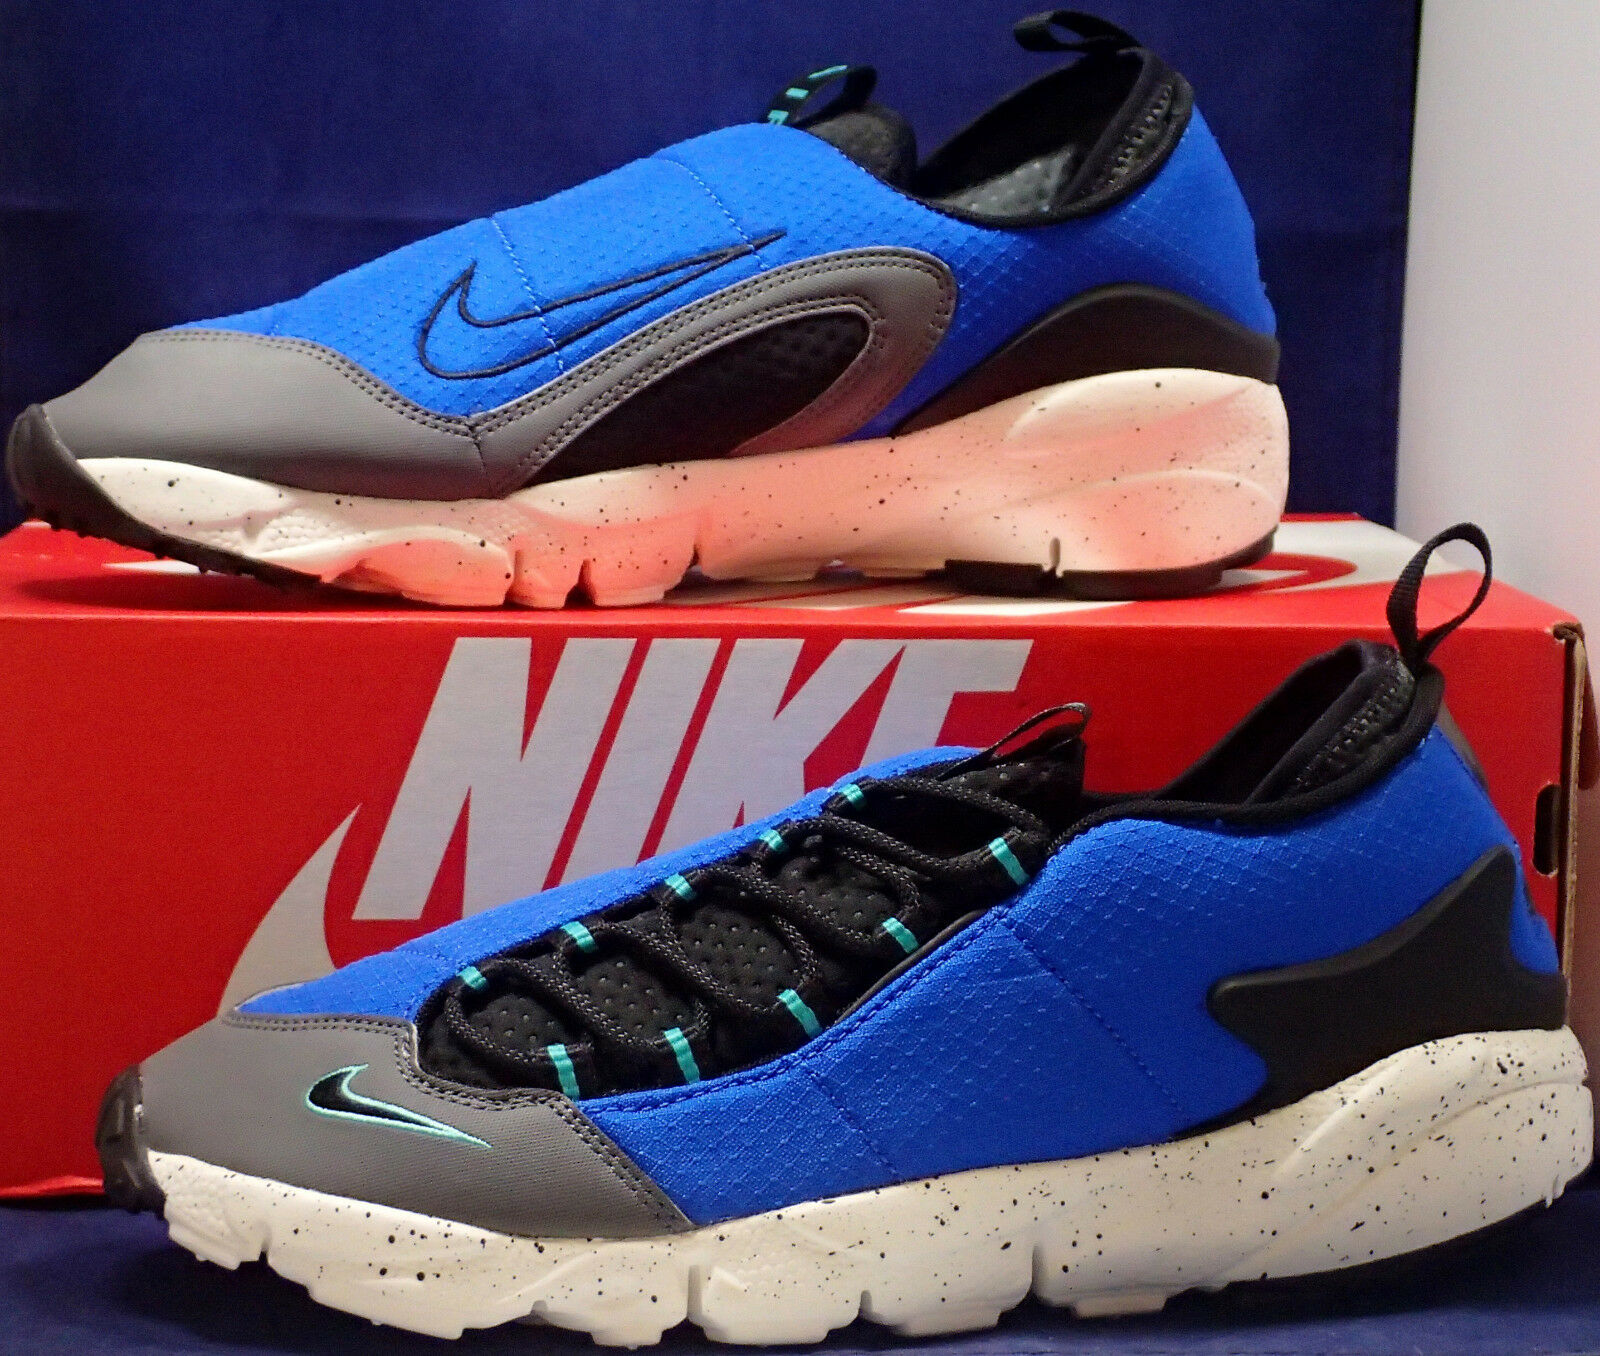 Nike Air Footscape NM Hyper Cobalt Blue Black Woven Price reduction Cheap and beautiful fashion